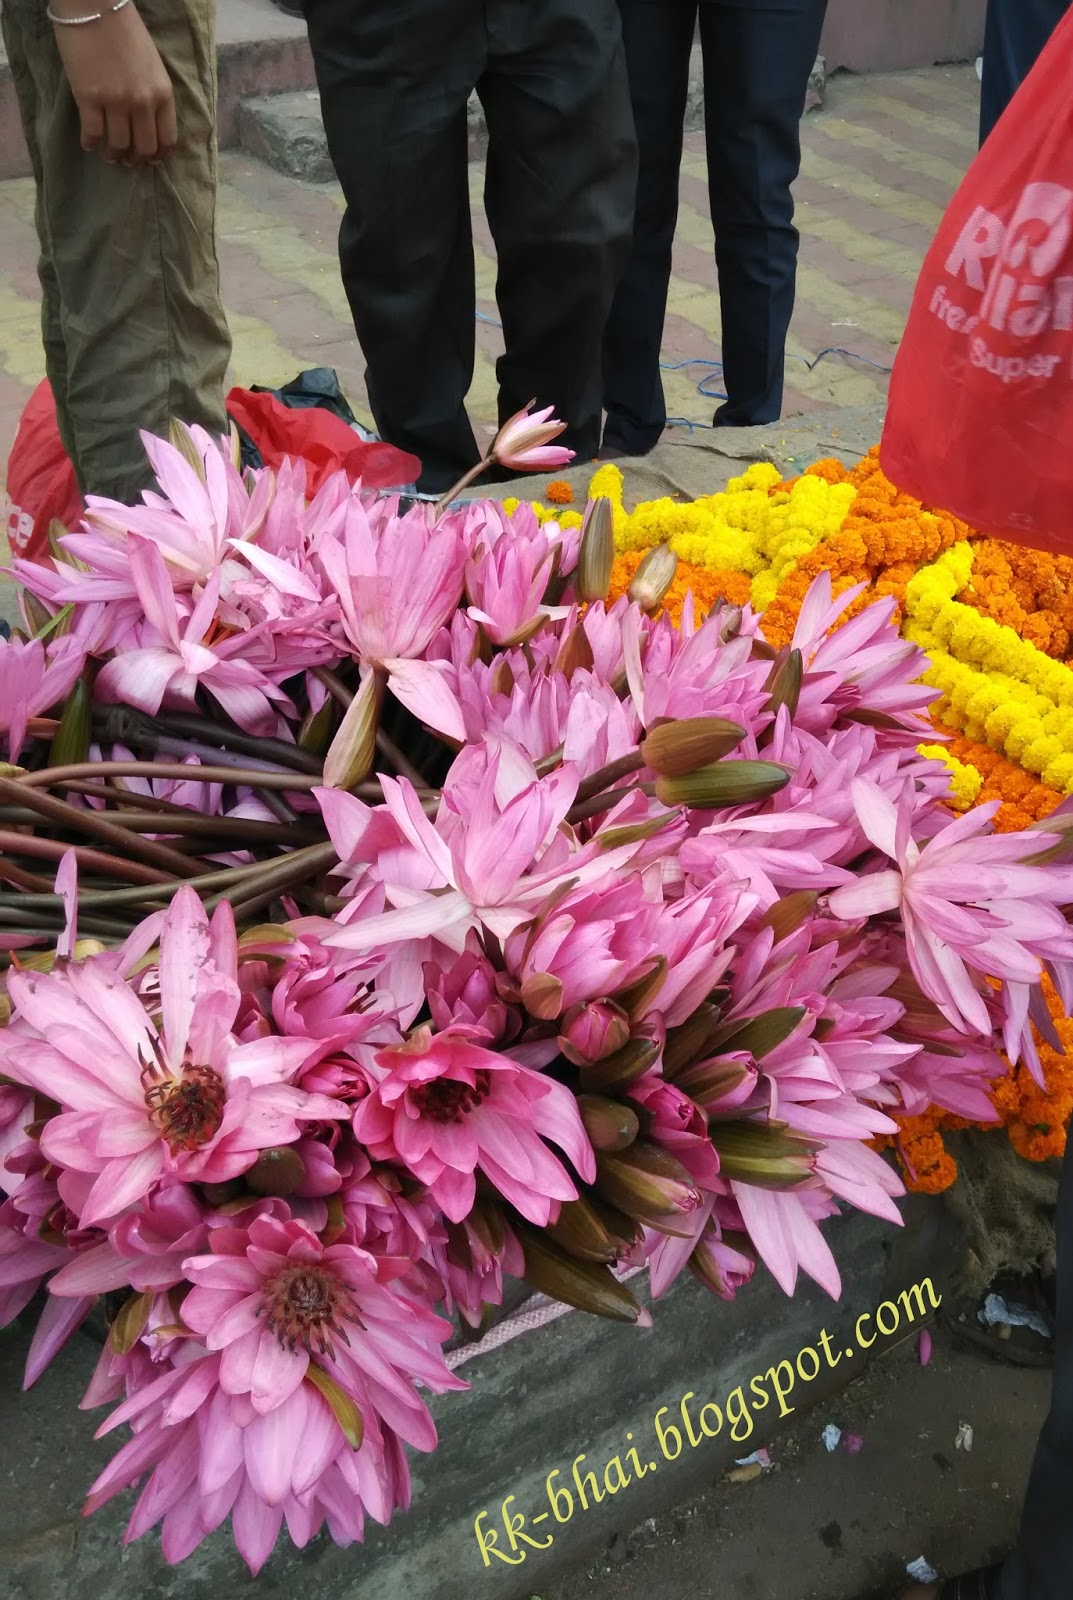 Puja flowers and other things used in puja hindu worship lotus flower on sale for laxmi puja izmirmasajfo